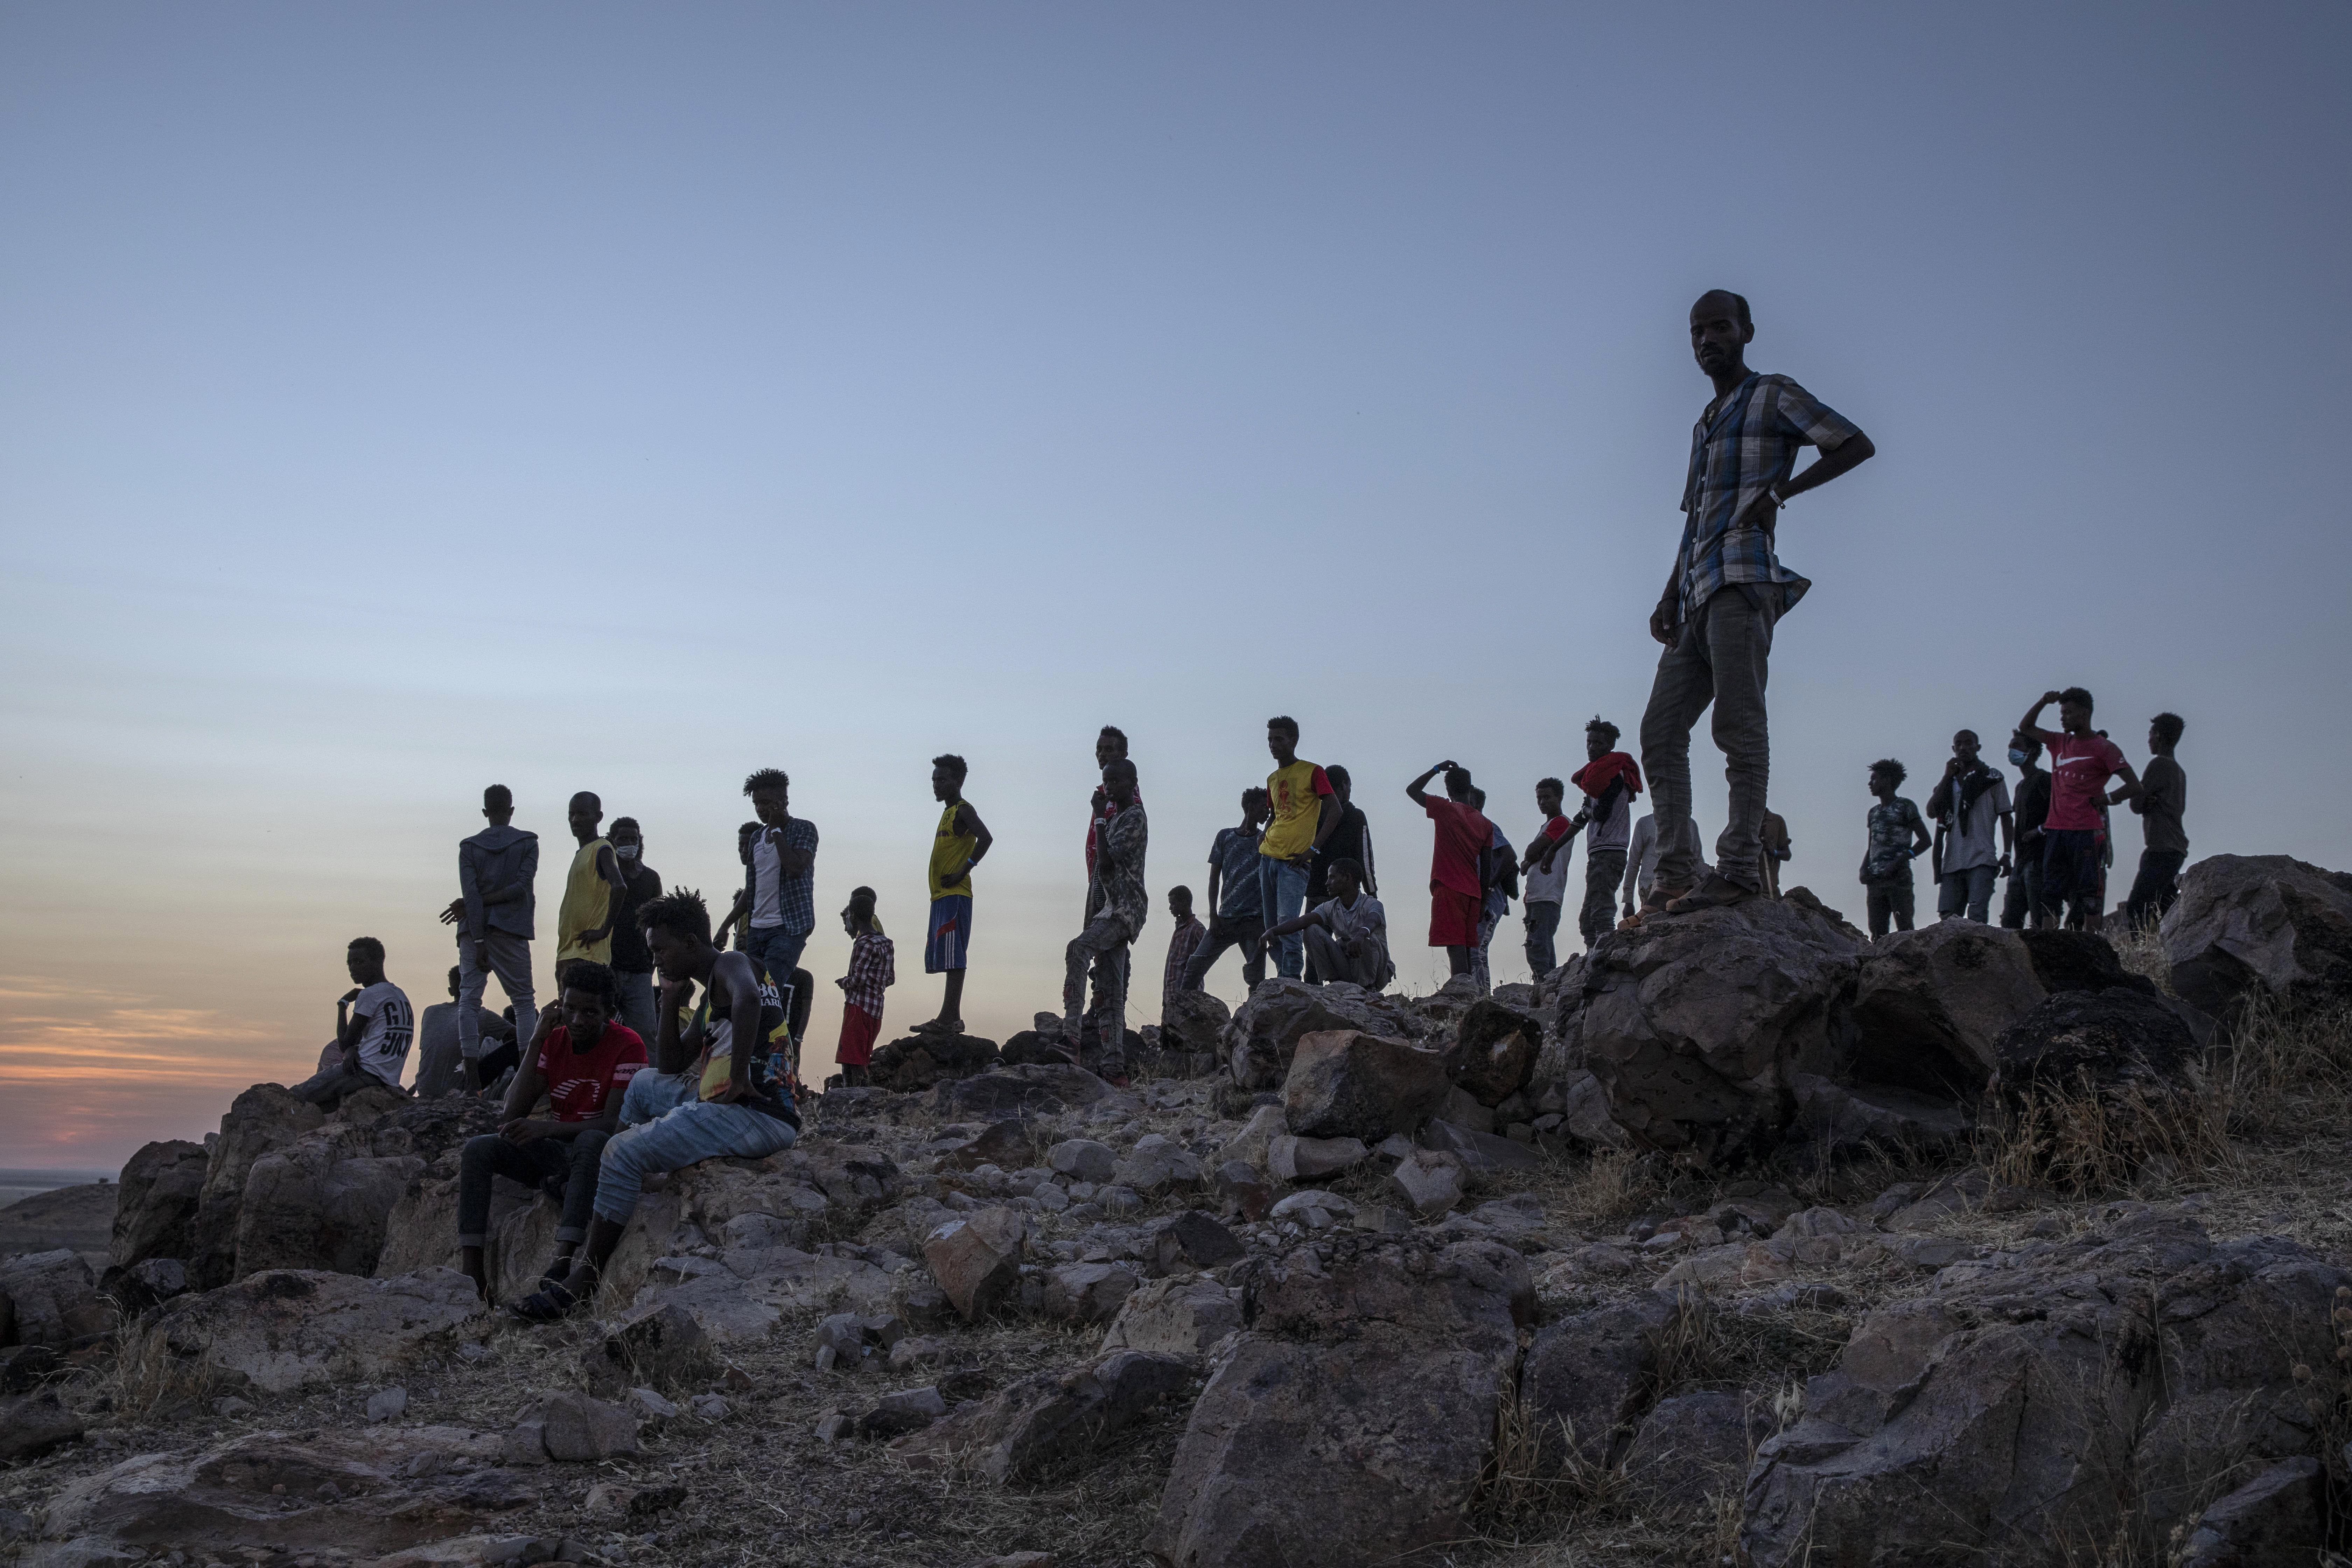 Ethiopians flee Tigray capital in fear of imminent assault